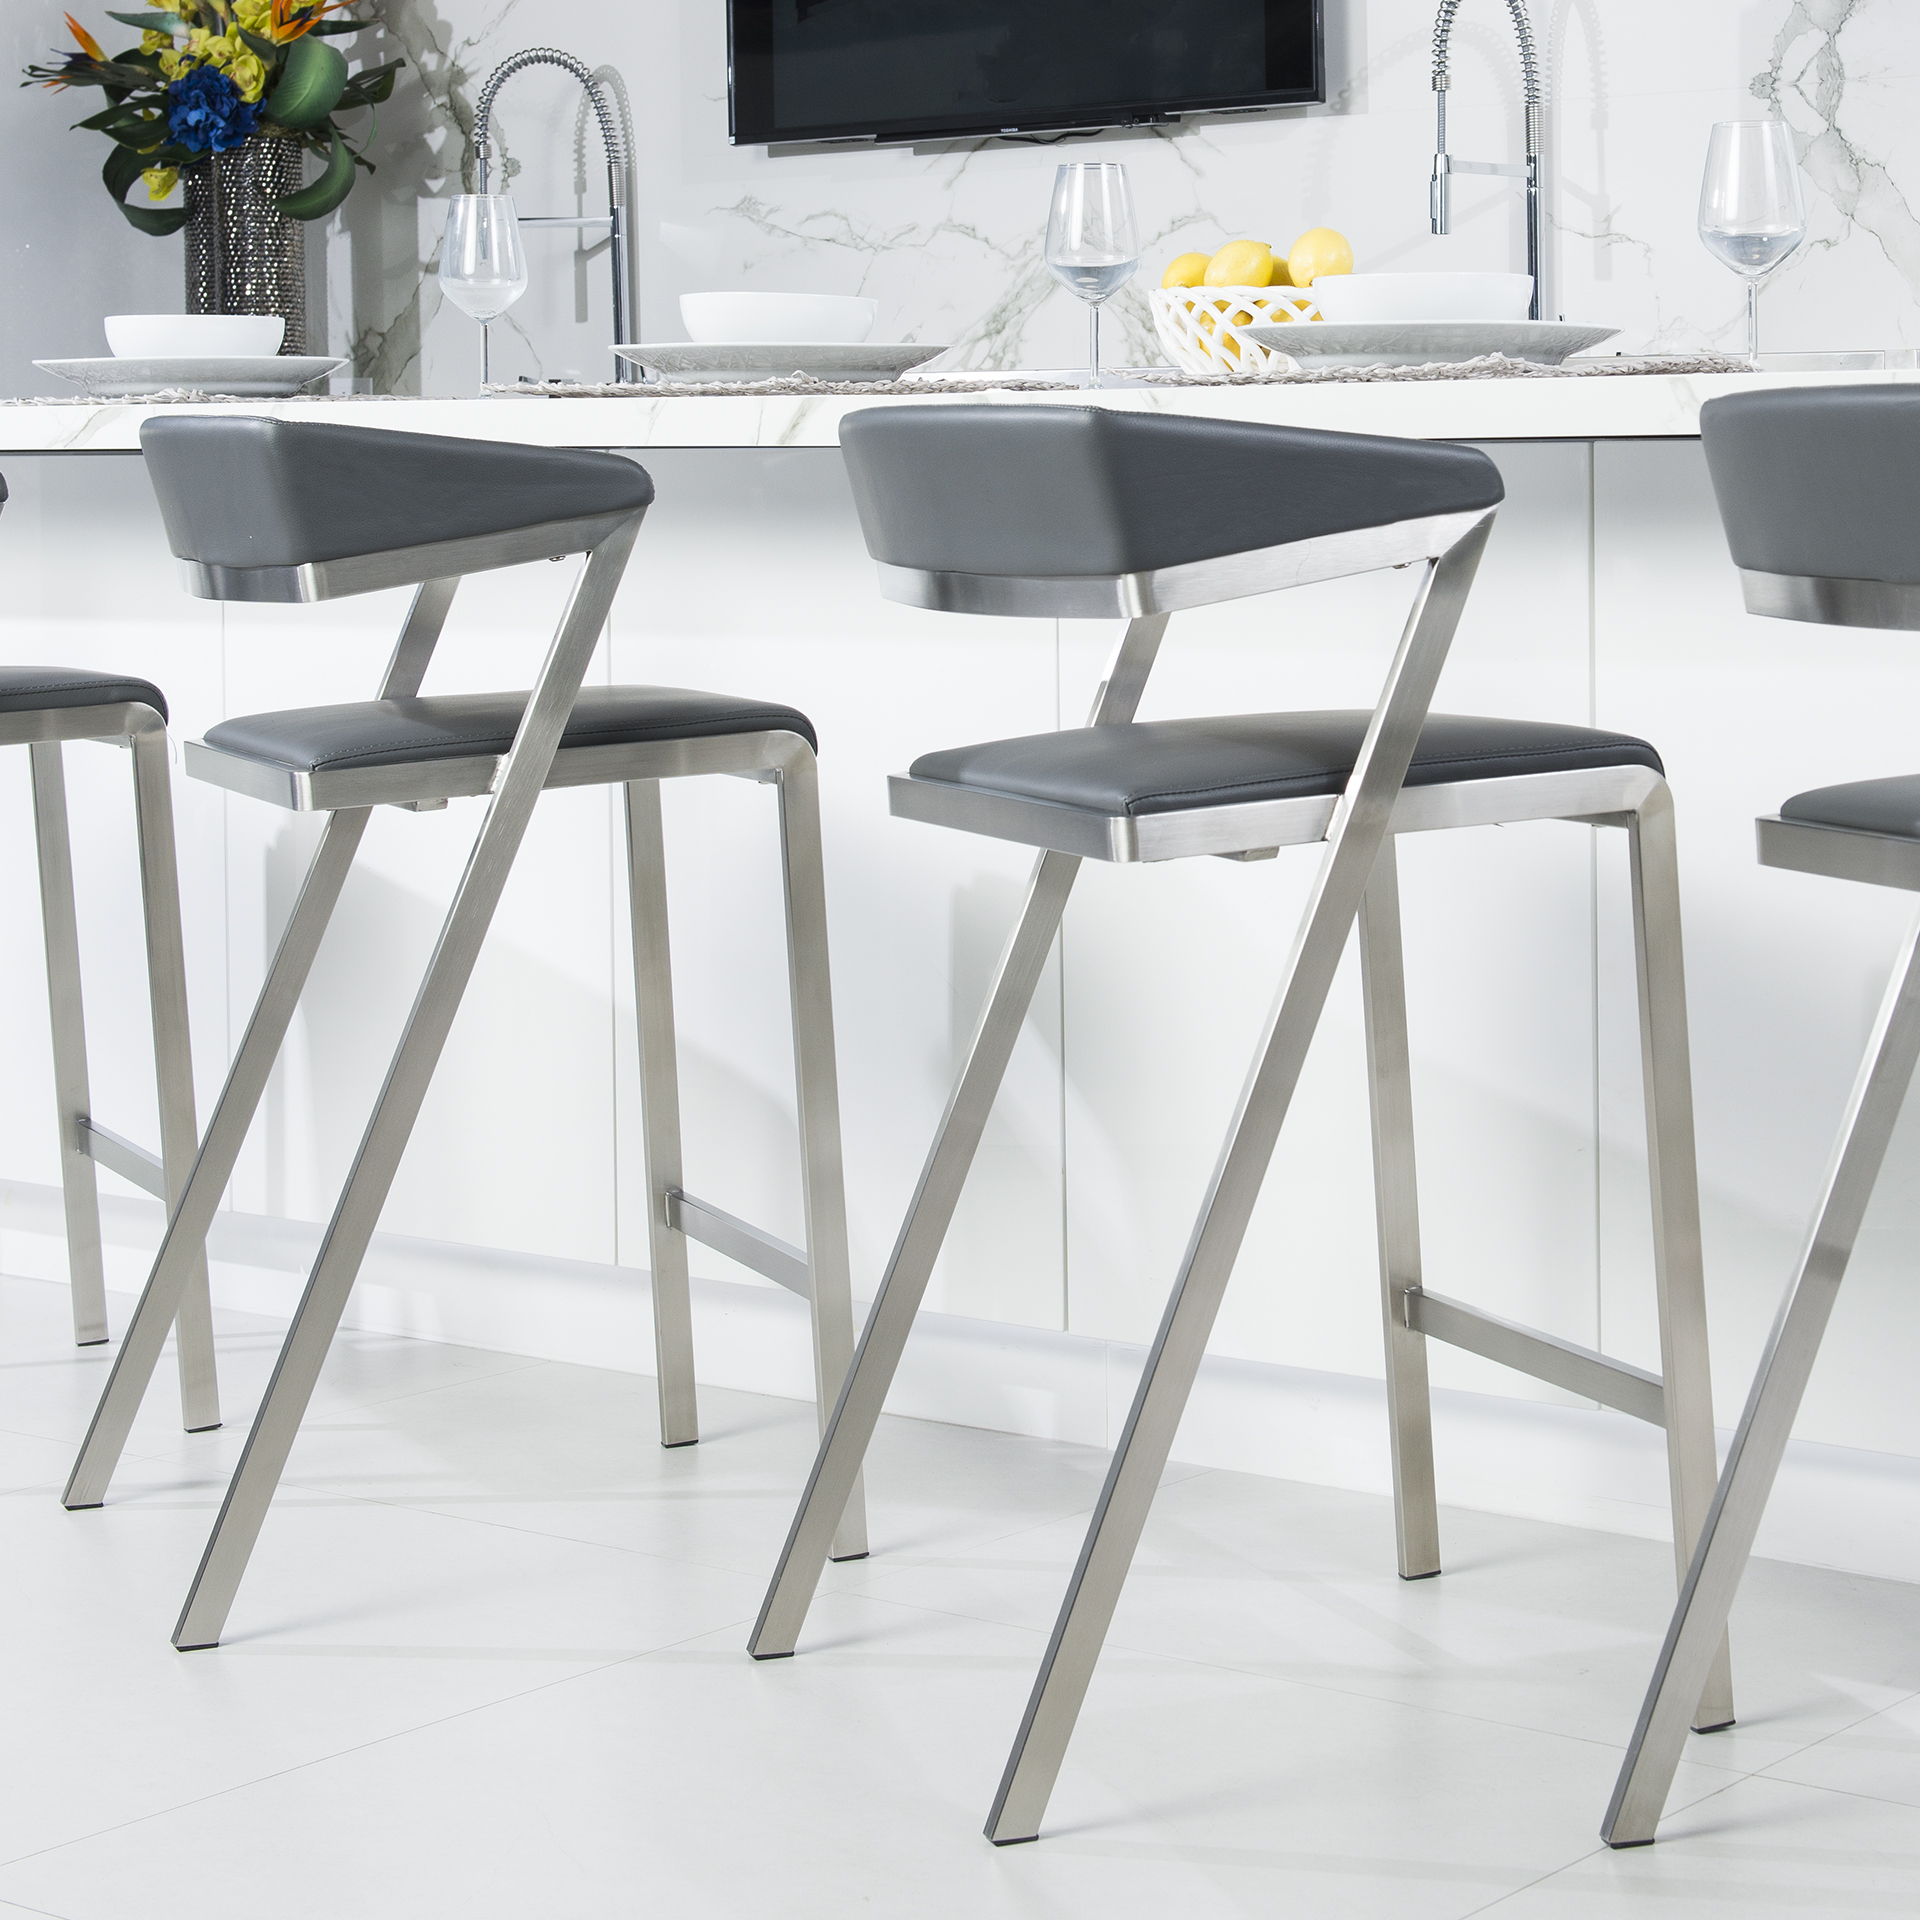 gray burnished stool seating for at dsc sale l brass id furniture milo century baughman stools in grey leather f bar